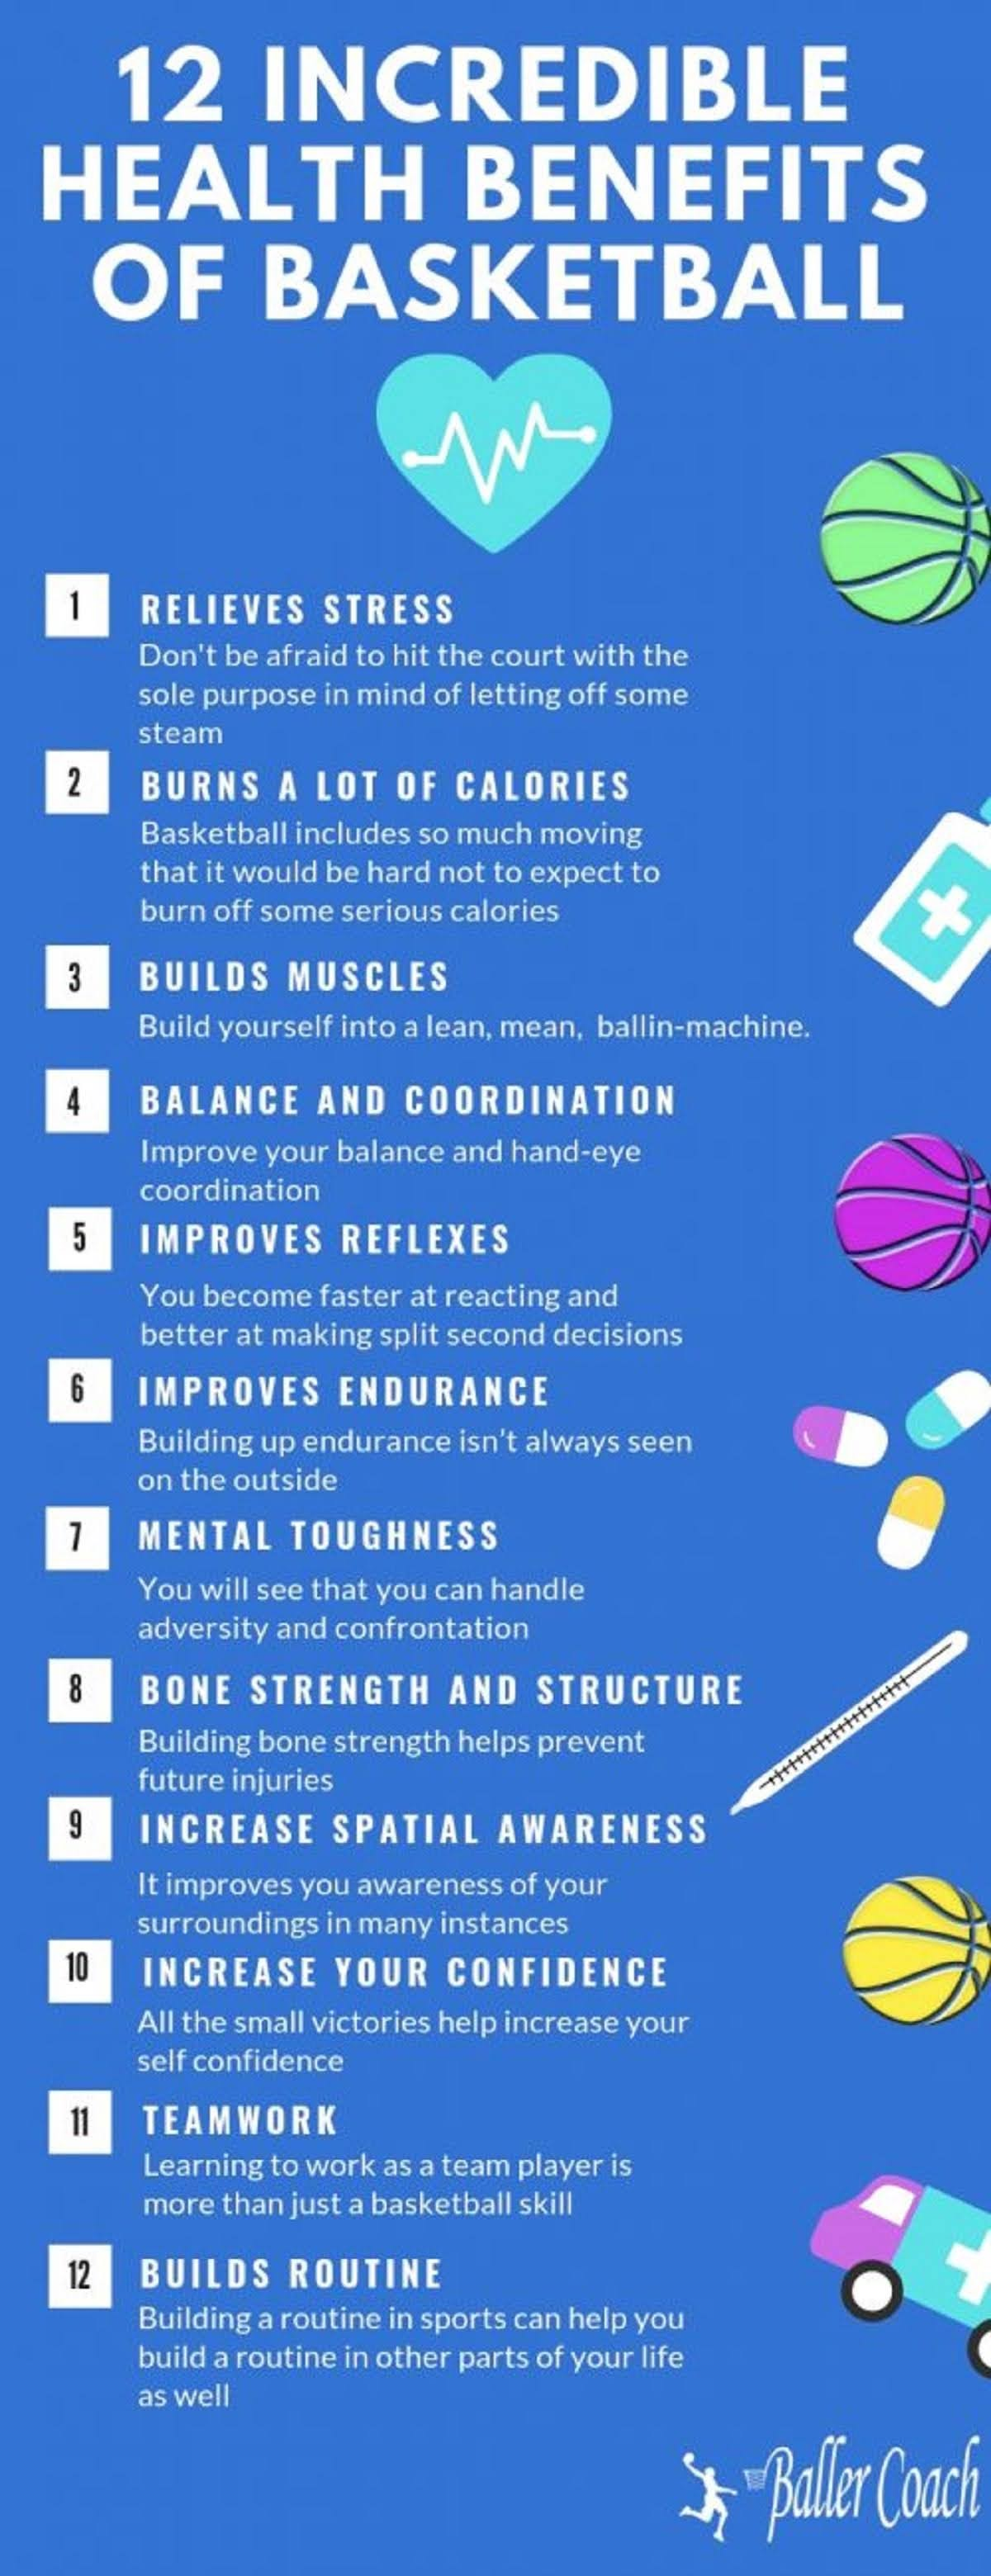 12-incredible-health-benefits-of-basketball-infographic